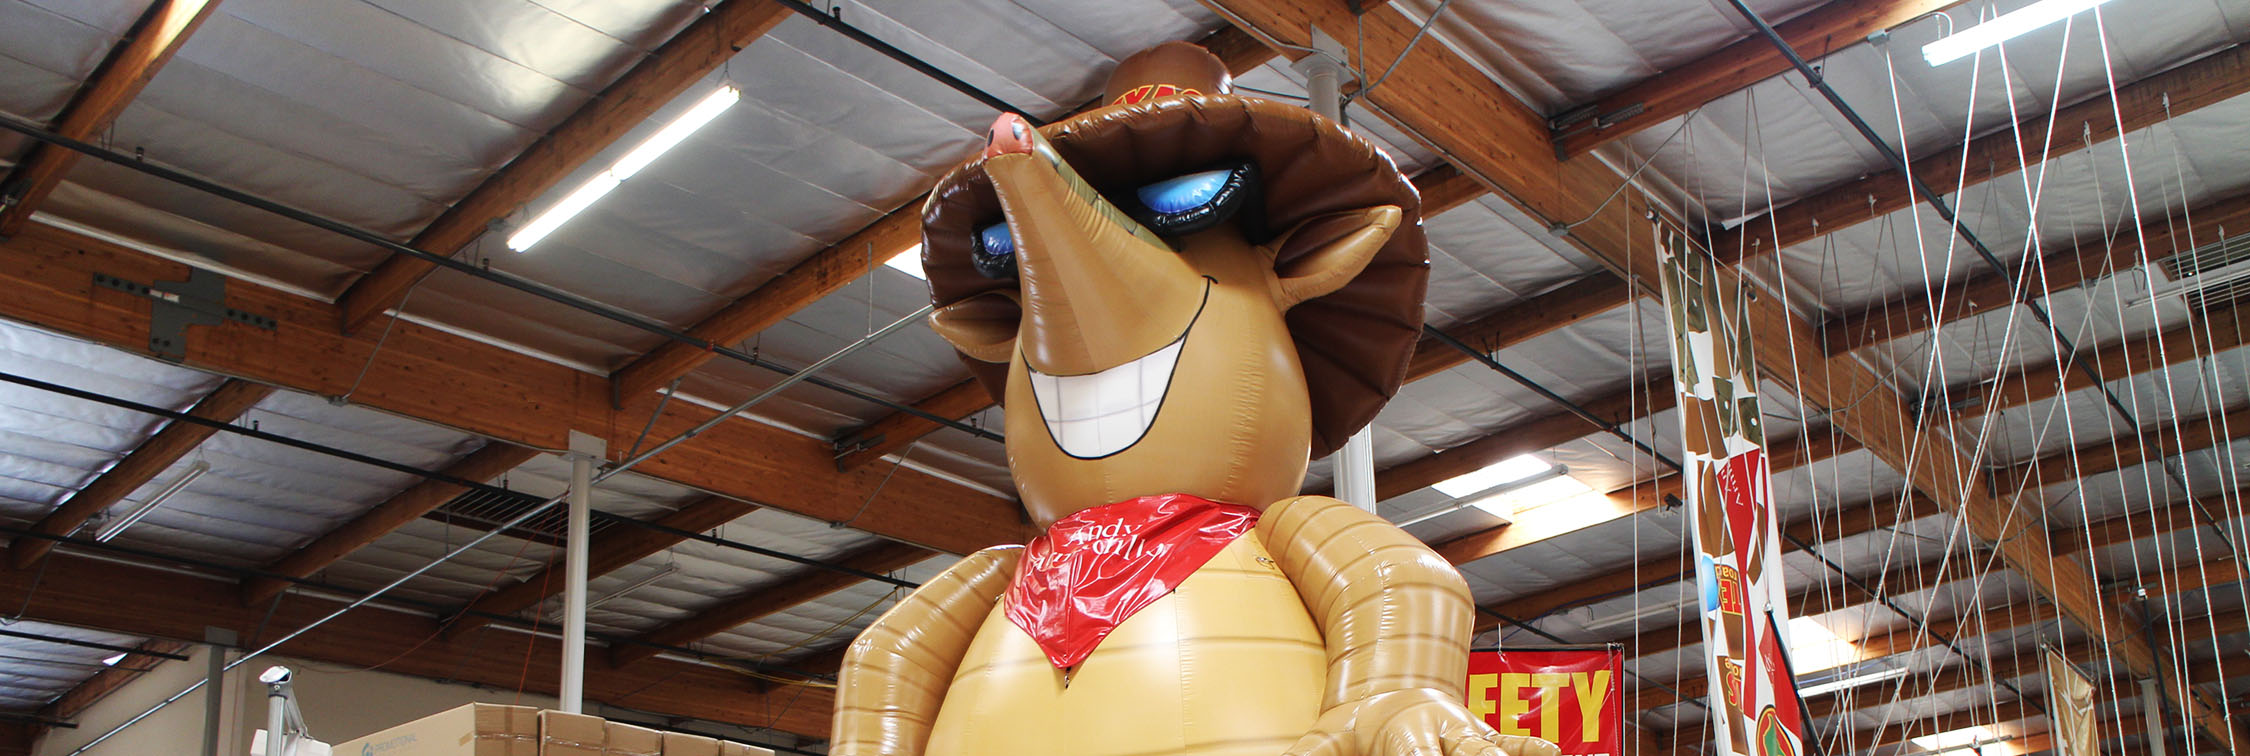 texas-roadhouse-armadillo-inflatable